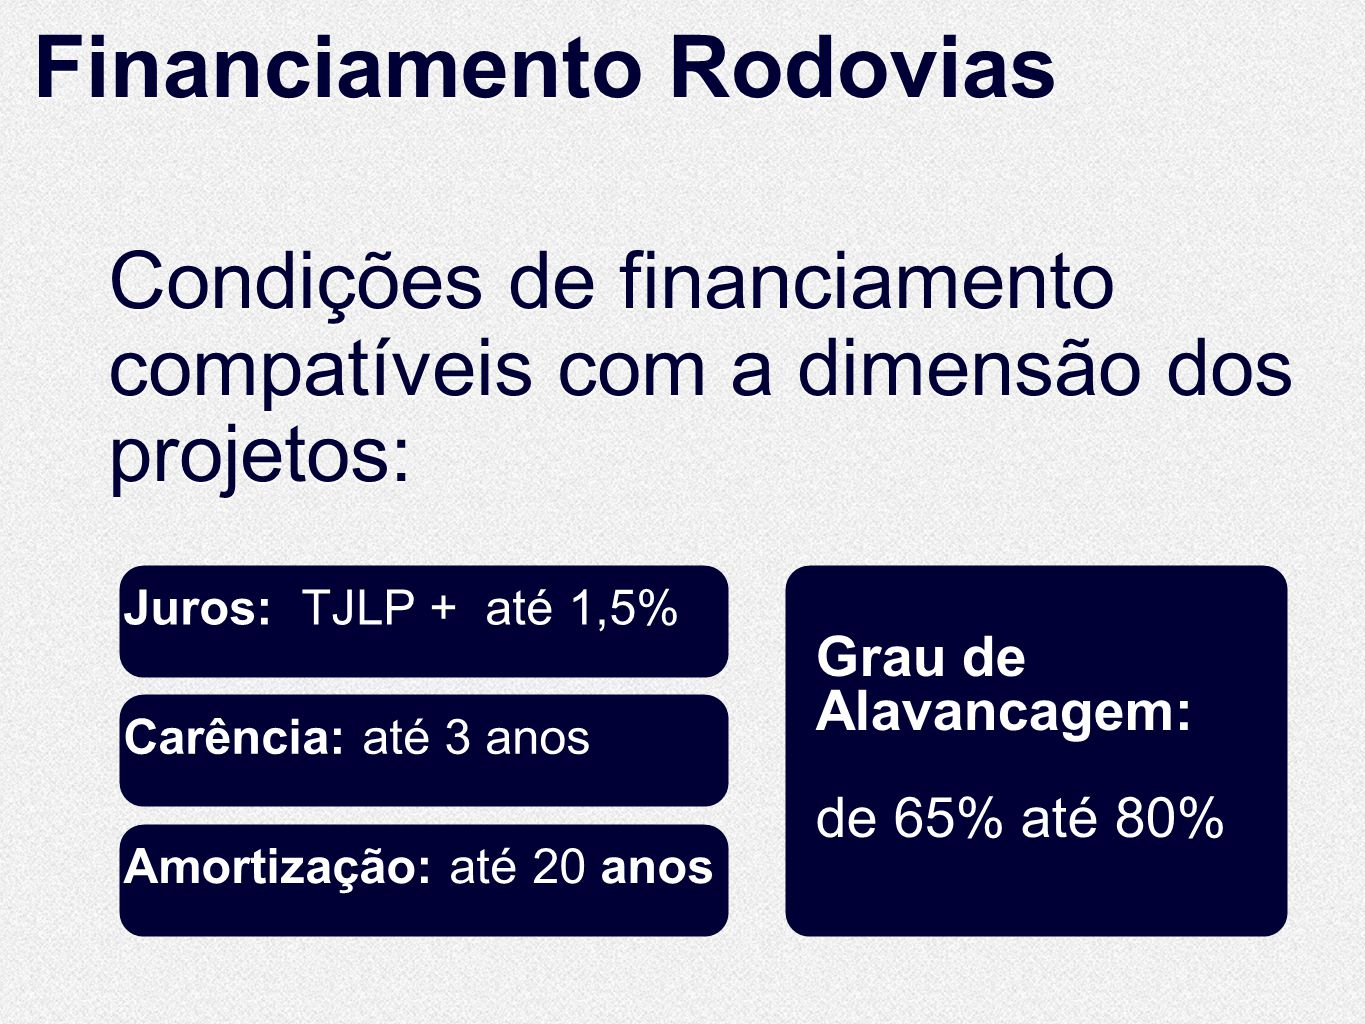 Financiamento Rodovias